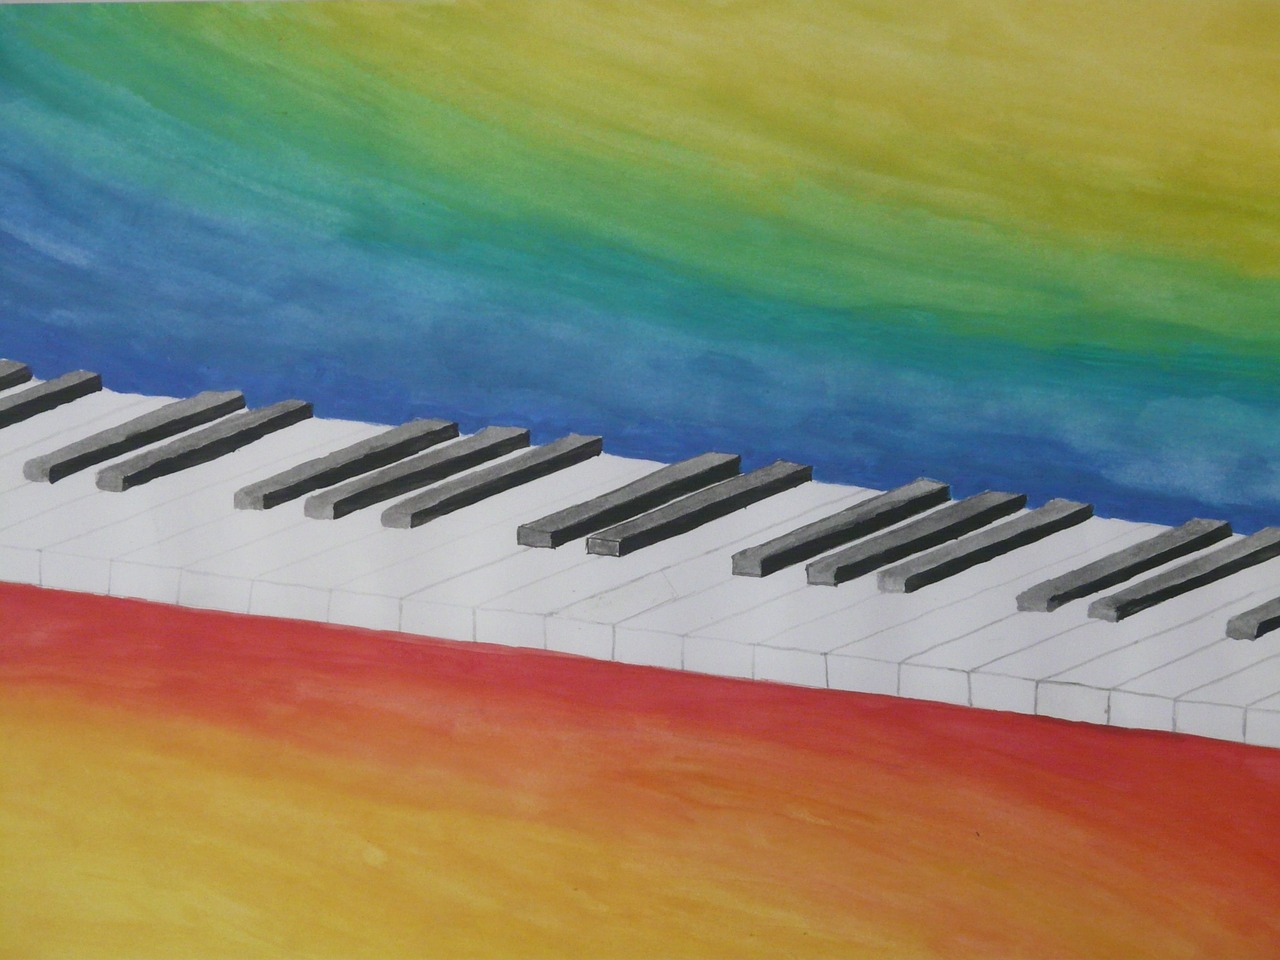 piano keys piano keys free photo